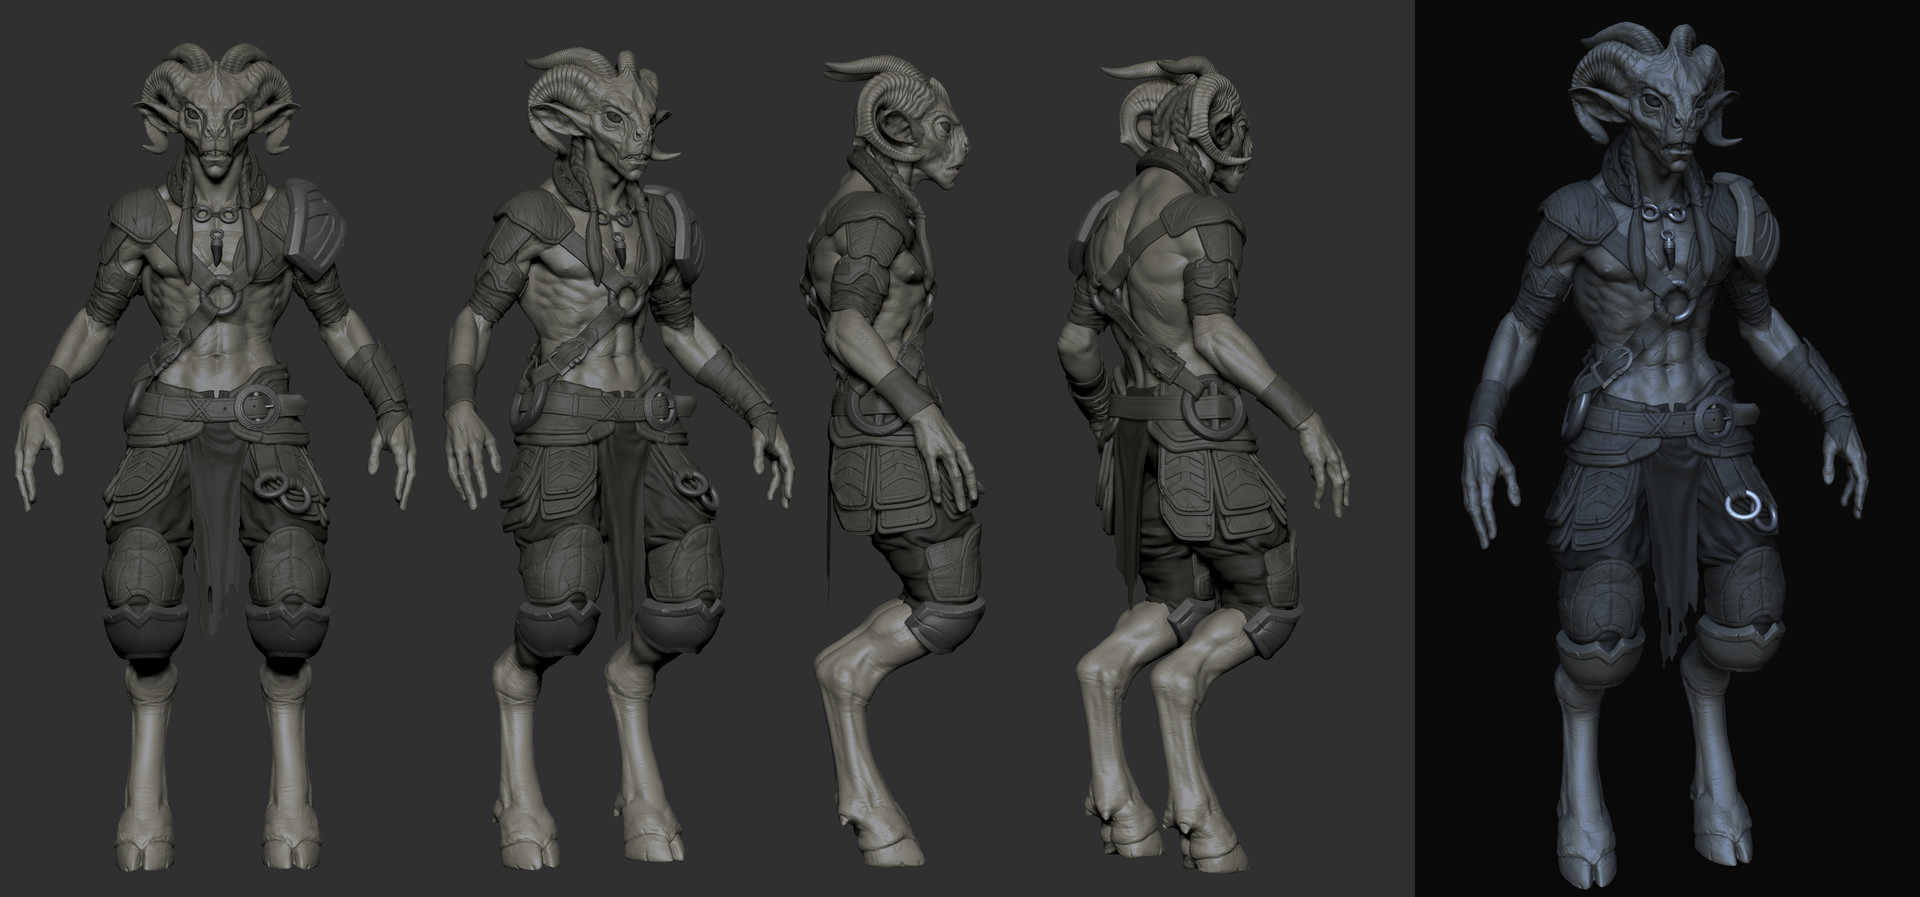 Amy Wip artstation - warrior faun wip, amy ash